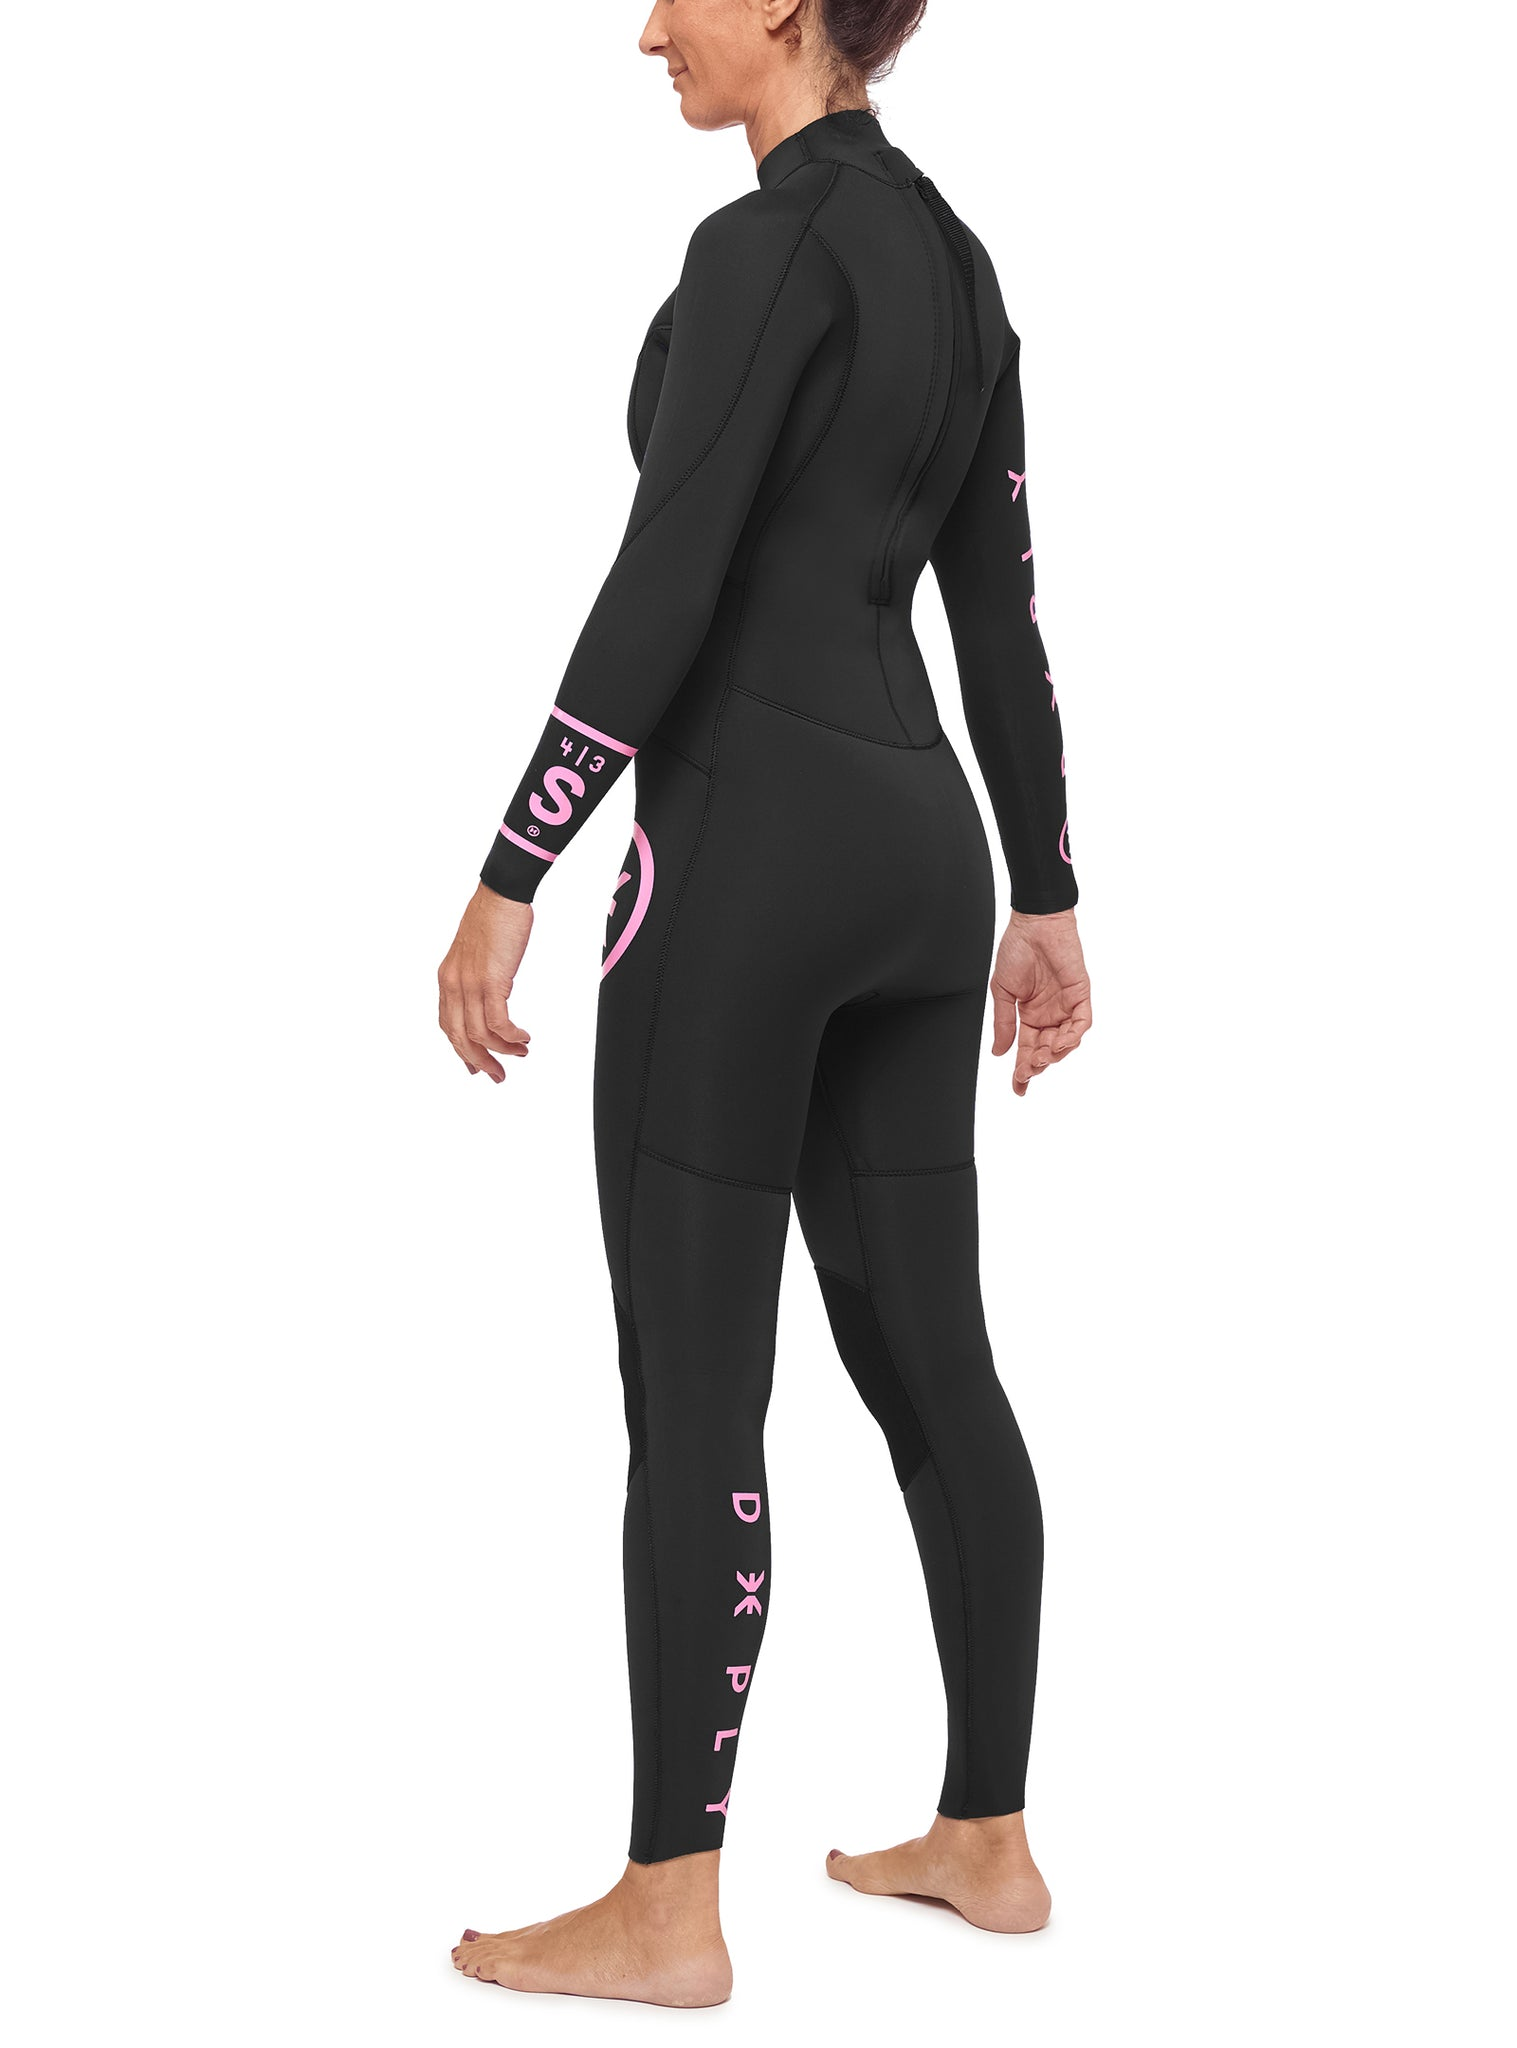 Wetsuit Woman Surfschool 4/3 Back Zip Black